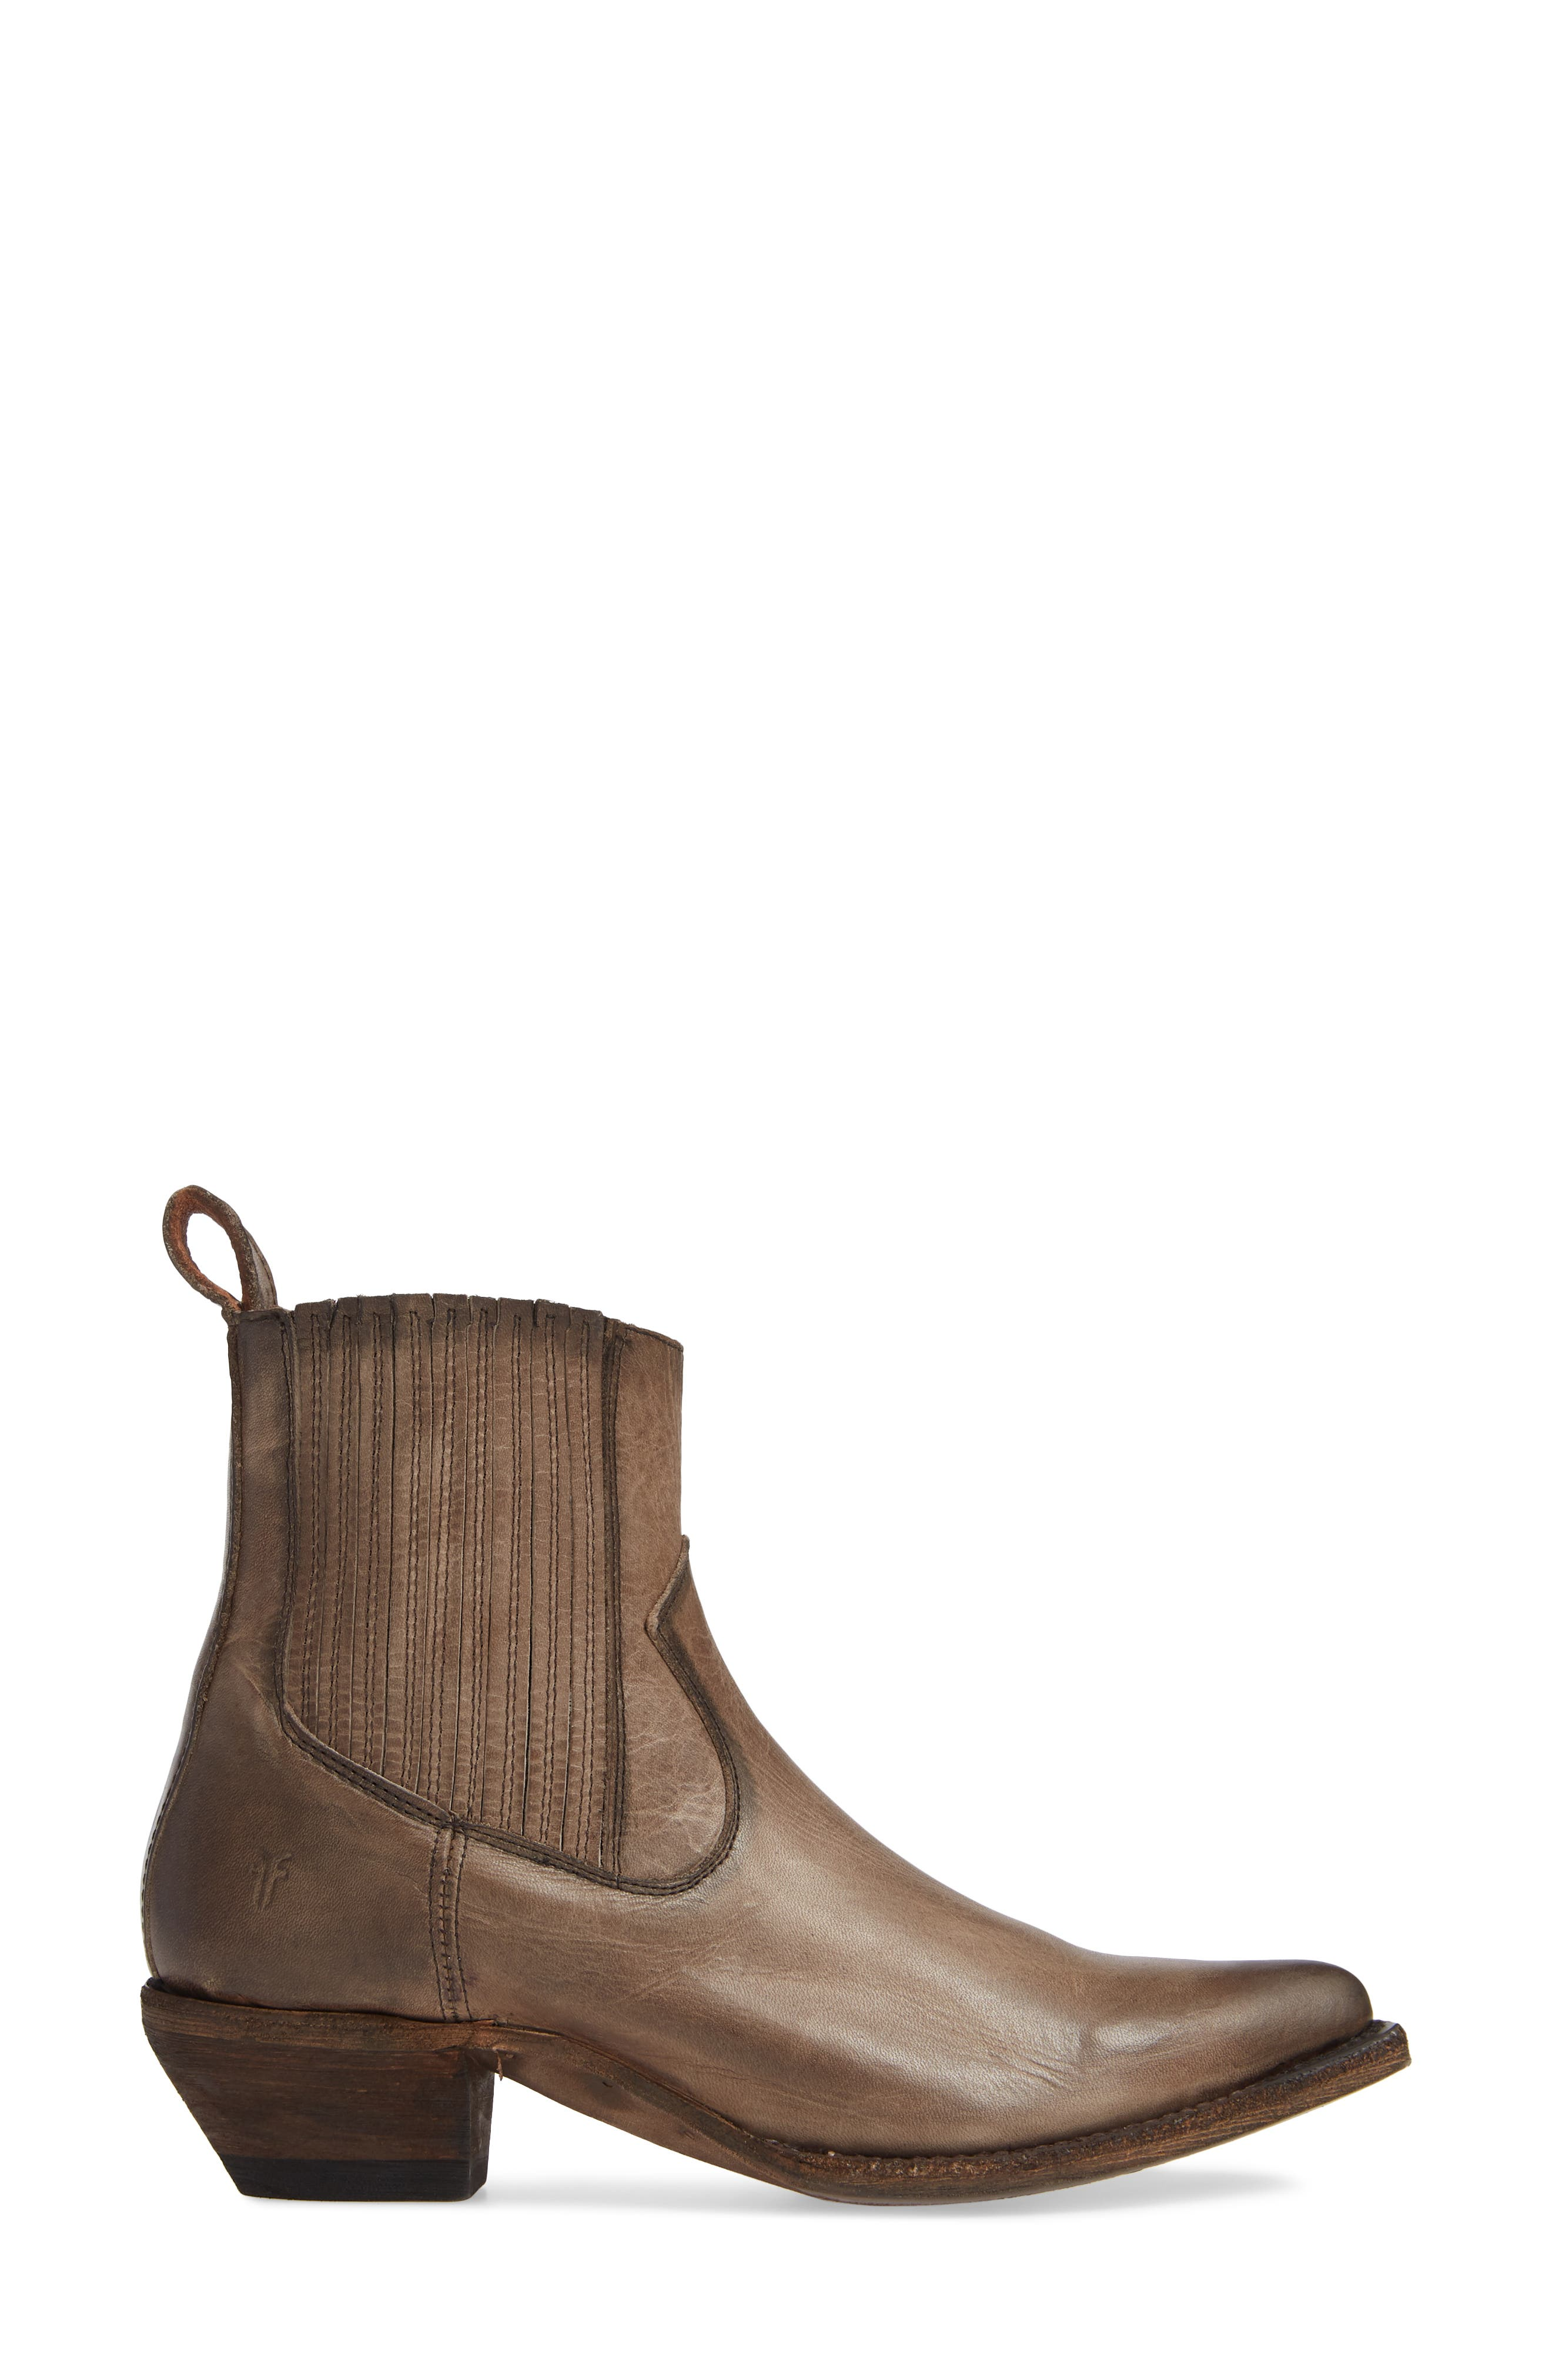 FRYE, Sacha Western Bootie, Alternate thumbnail 3, color, STONE LEATHER